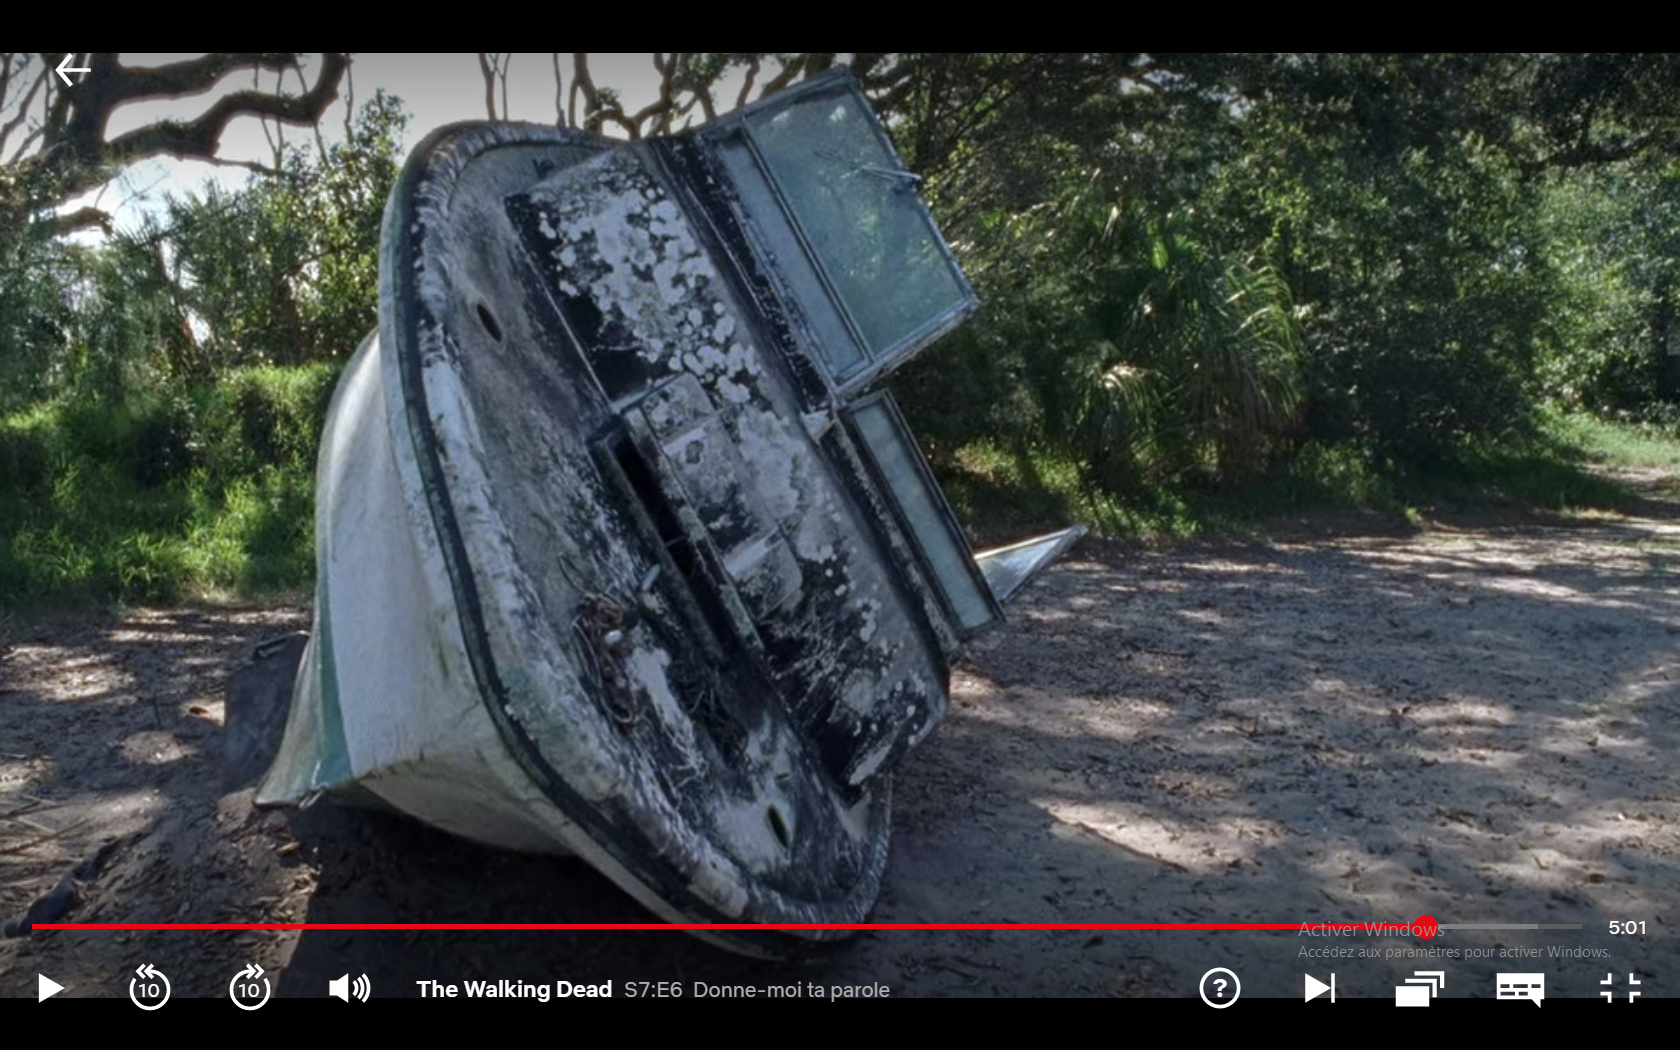 The Walking dead, storybording with Google Earth and Street View - Page 6 Captur23